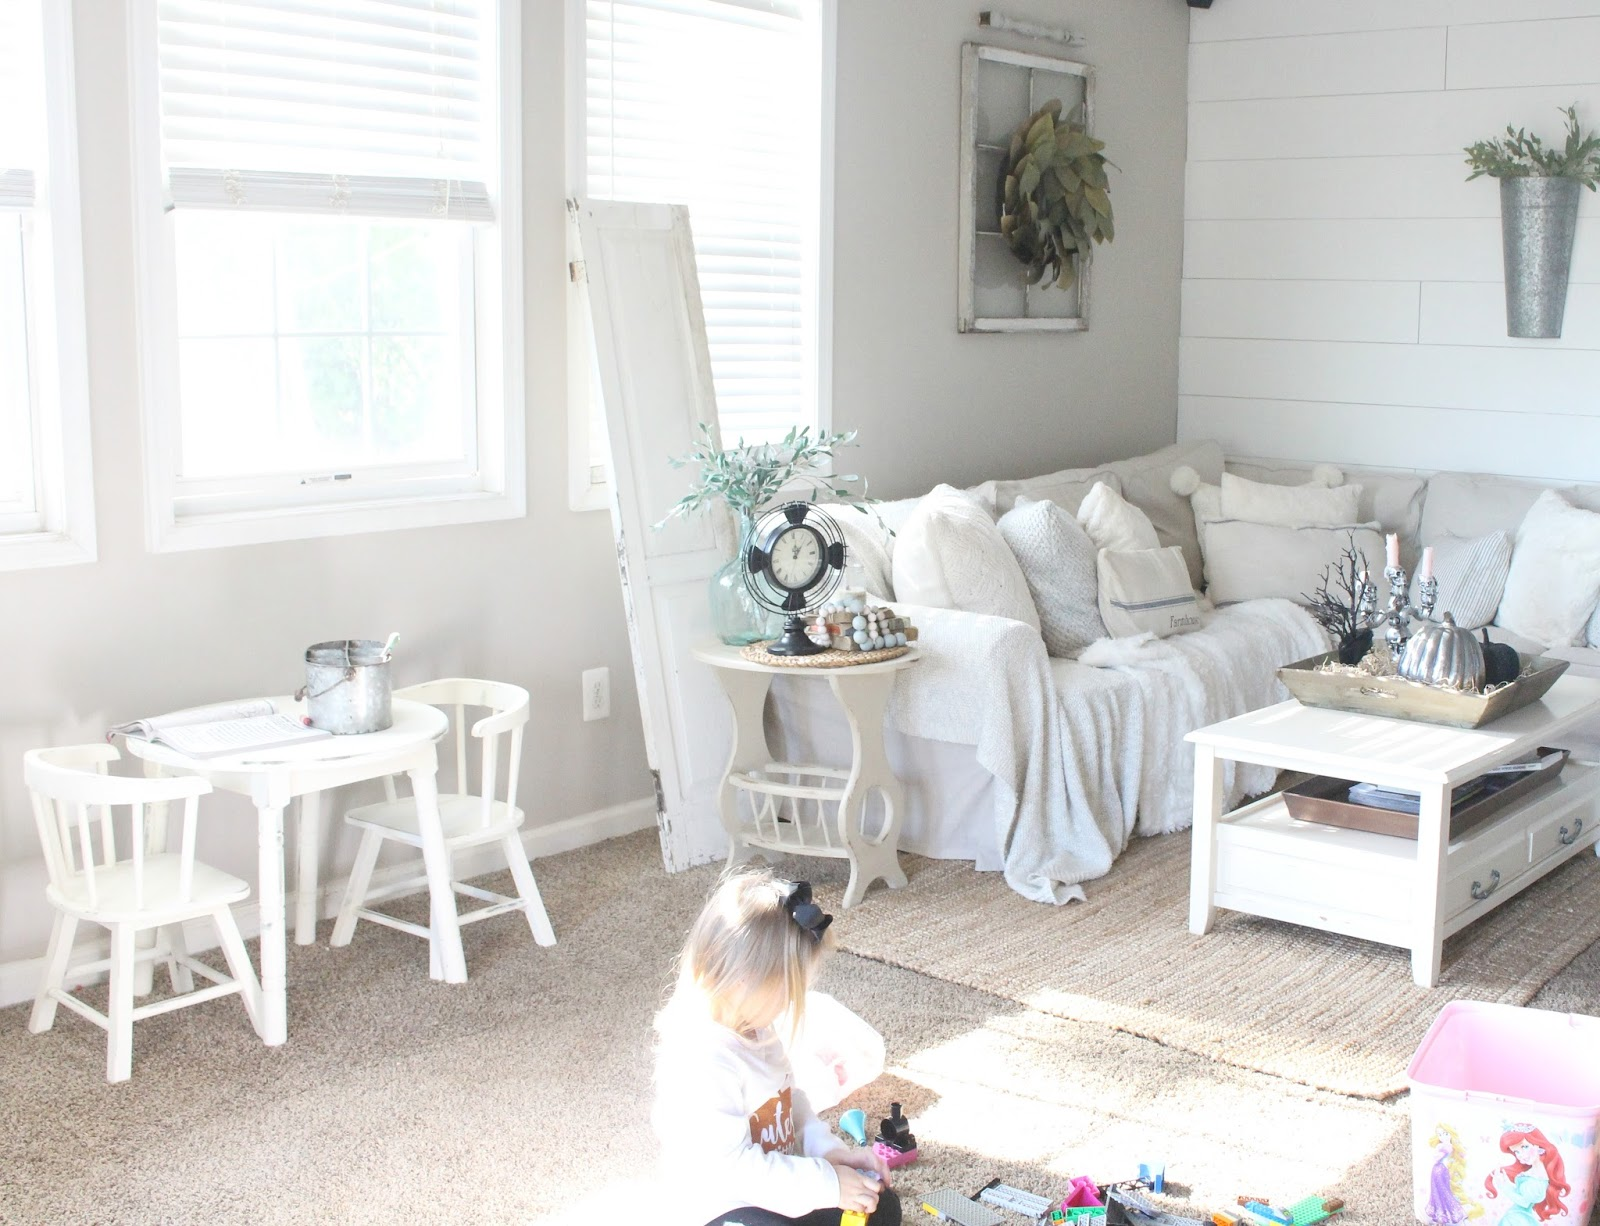 Vintage Kids Table and Chairs Makeover with Chalk Paint - The Glam ...